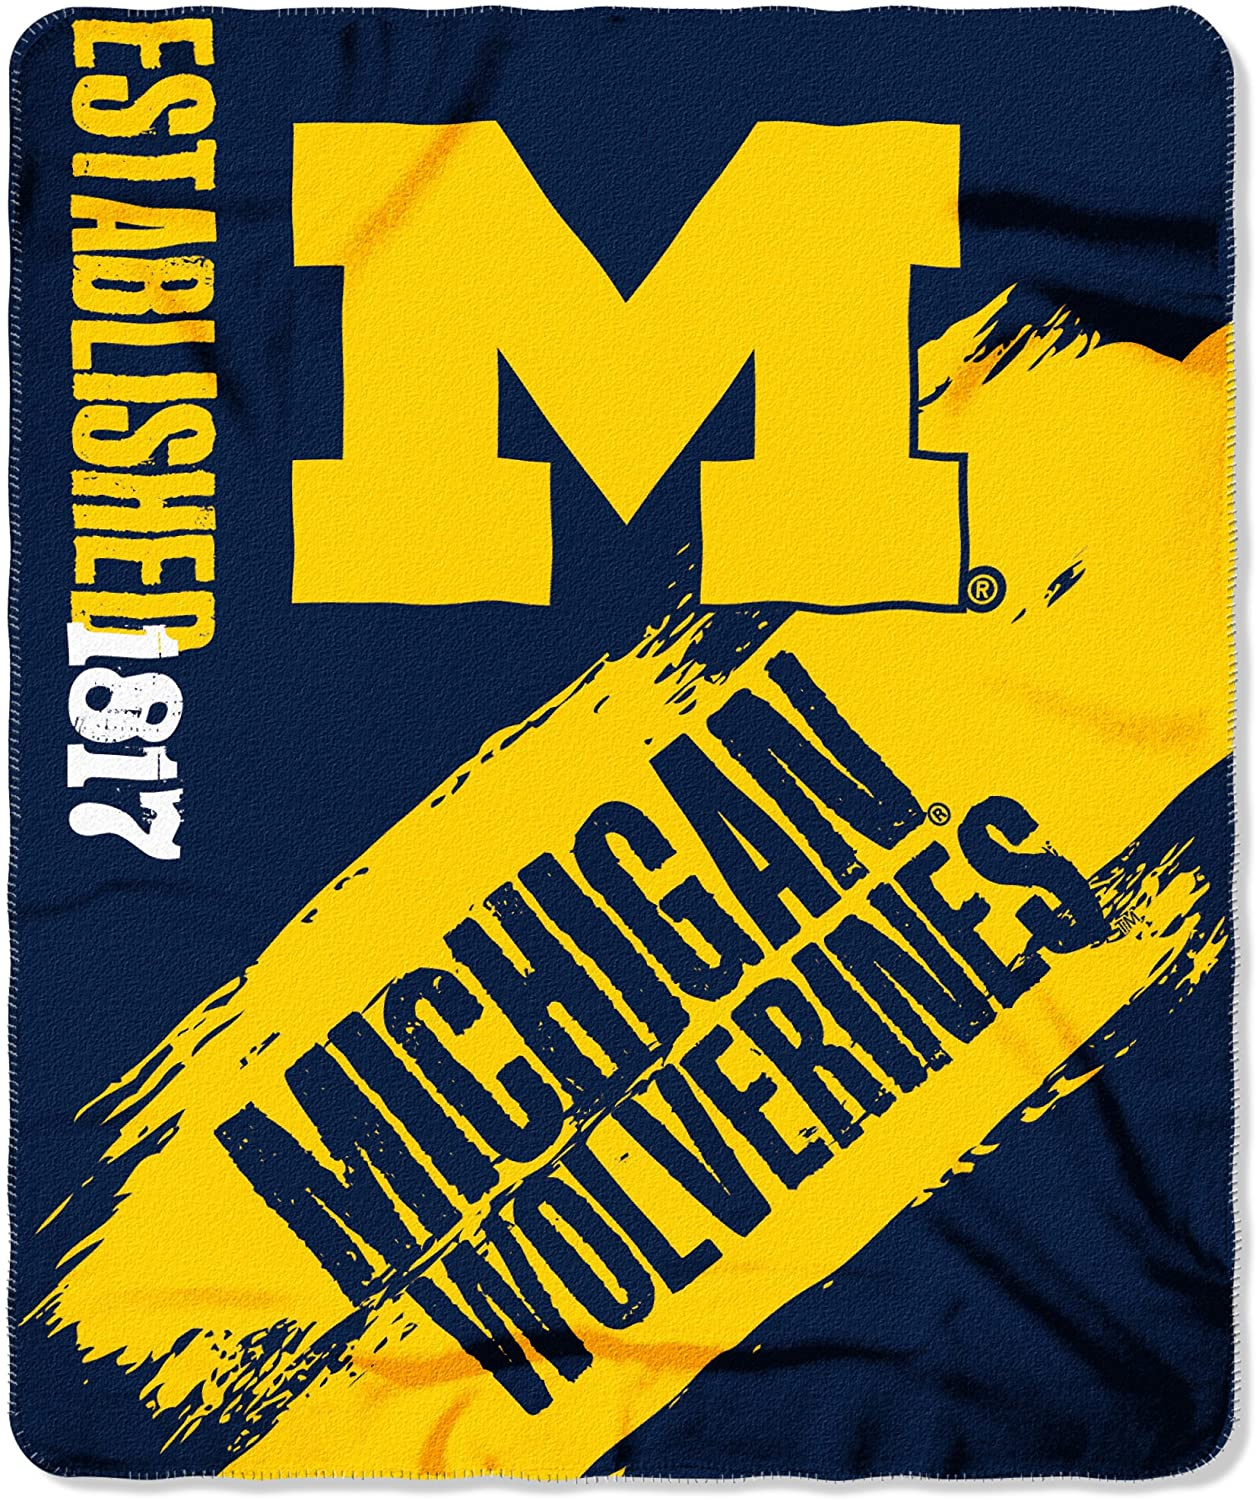 Officially Licensed Ncaa Printed Throw Michigan Wolverines Fleece Blanket